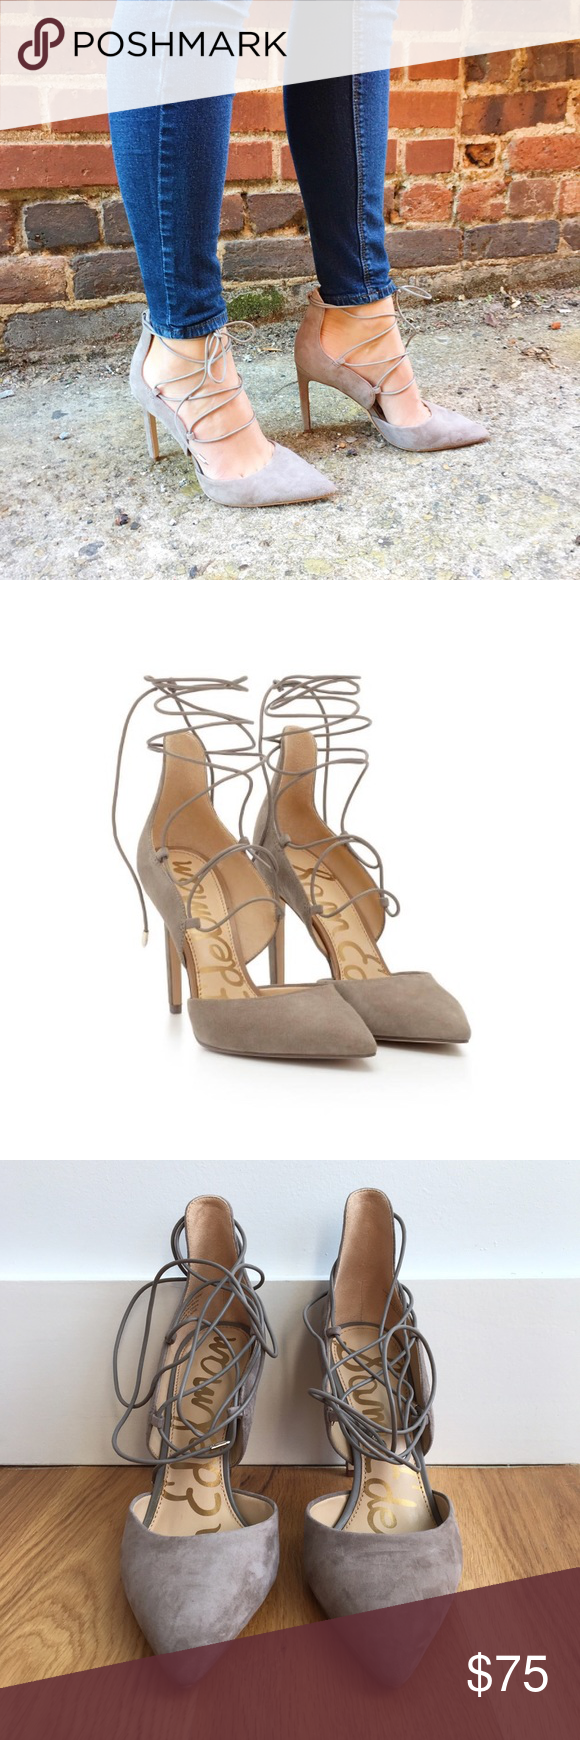 """Sam Edelman Lace-Up Suede Heels - Sam Edelman nude lace up heels - Beautiful real suede leather - 4"""" heel height - Only worn indoors once, in perfect condition Sam Edelman Shoes Heels"""